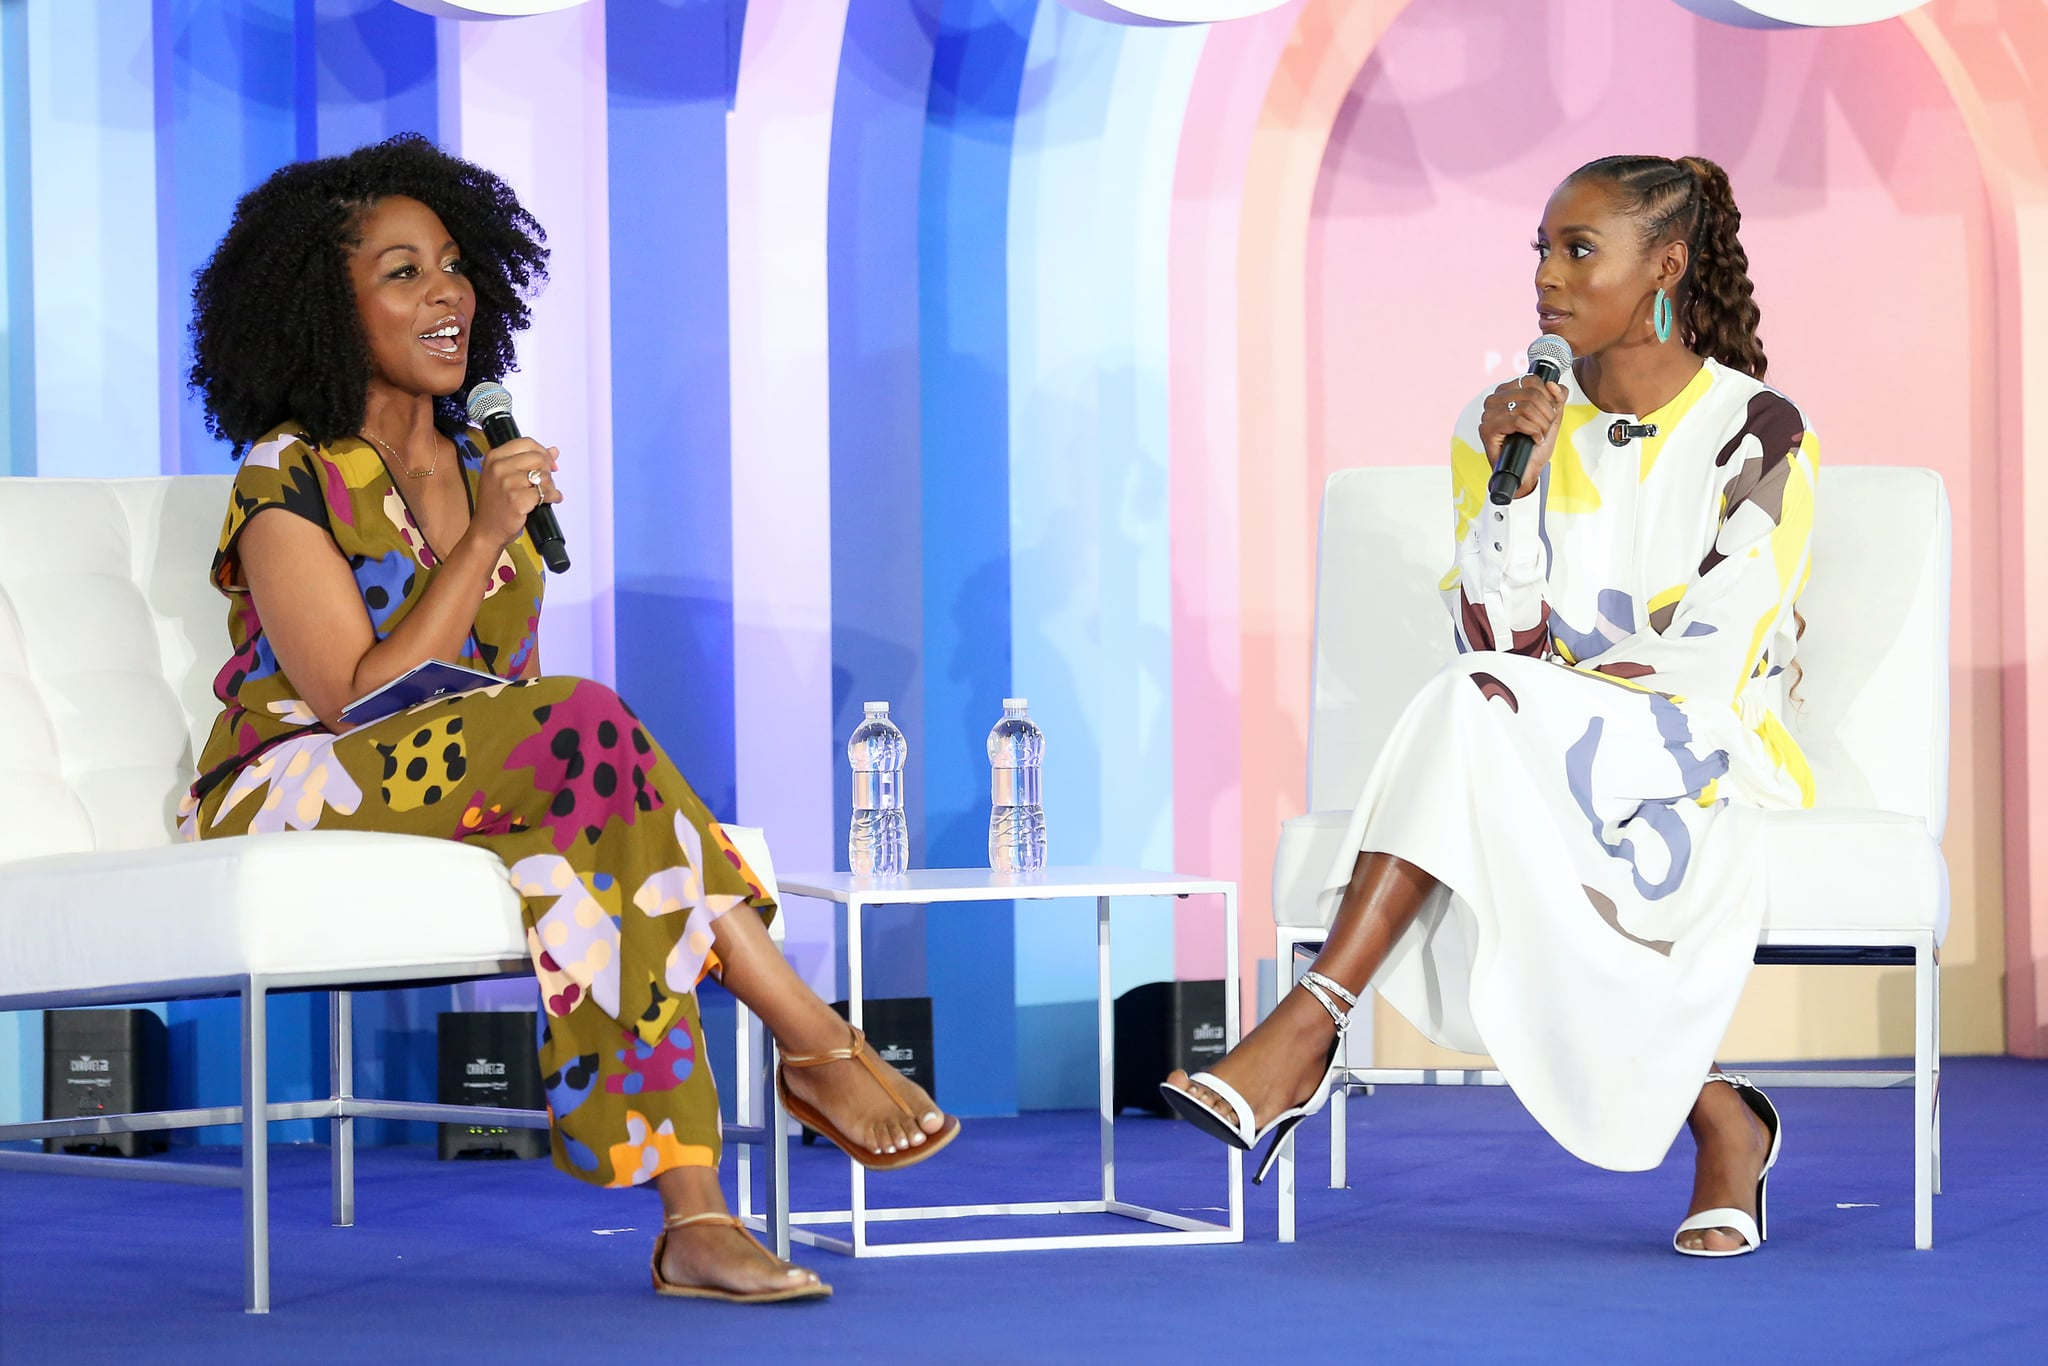 NEW YORK, NEW YORK - JUNE 23: Amy Aniobi and Issa Rae speak during